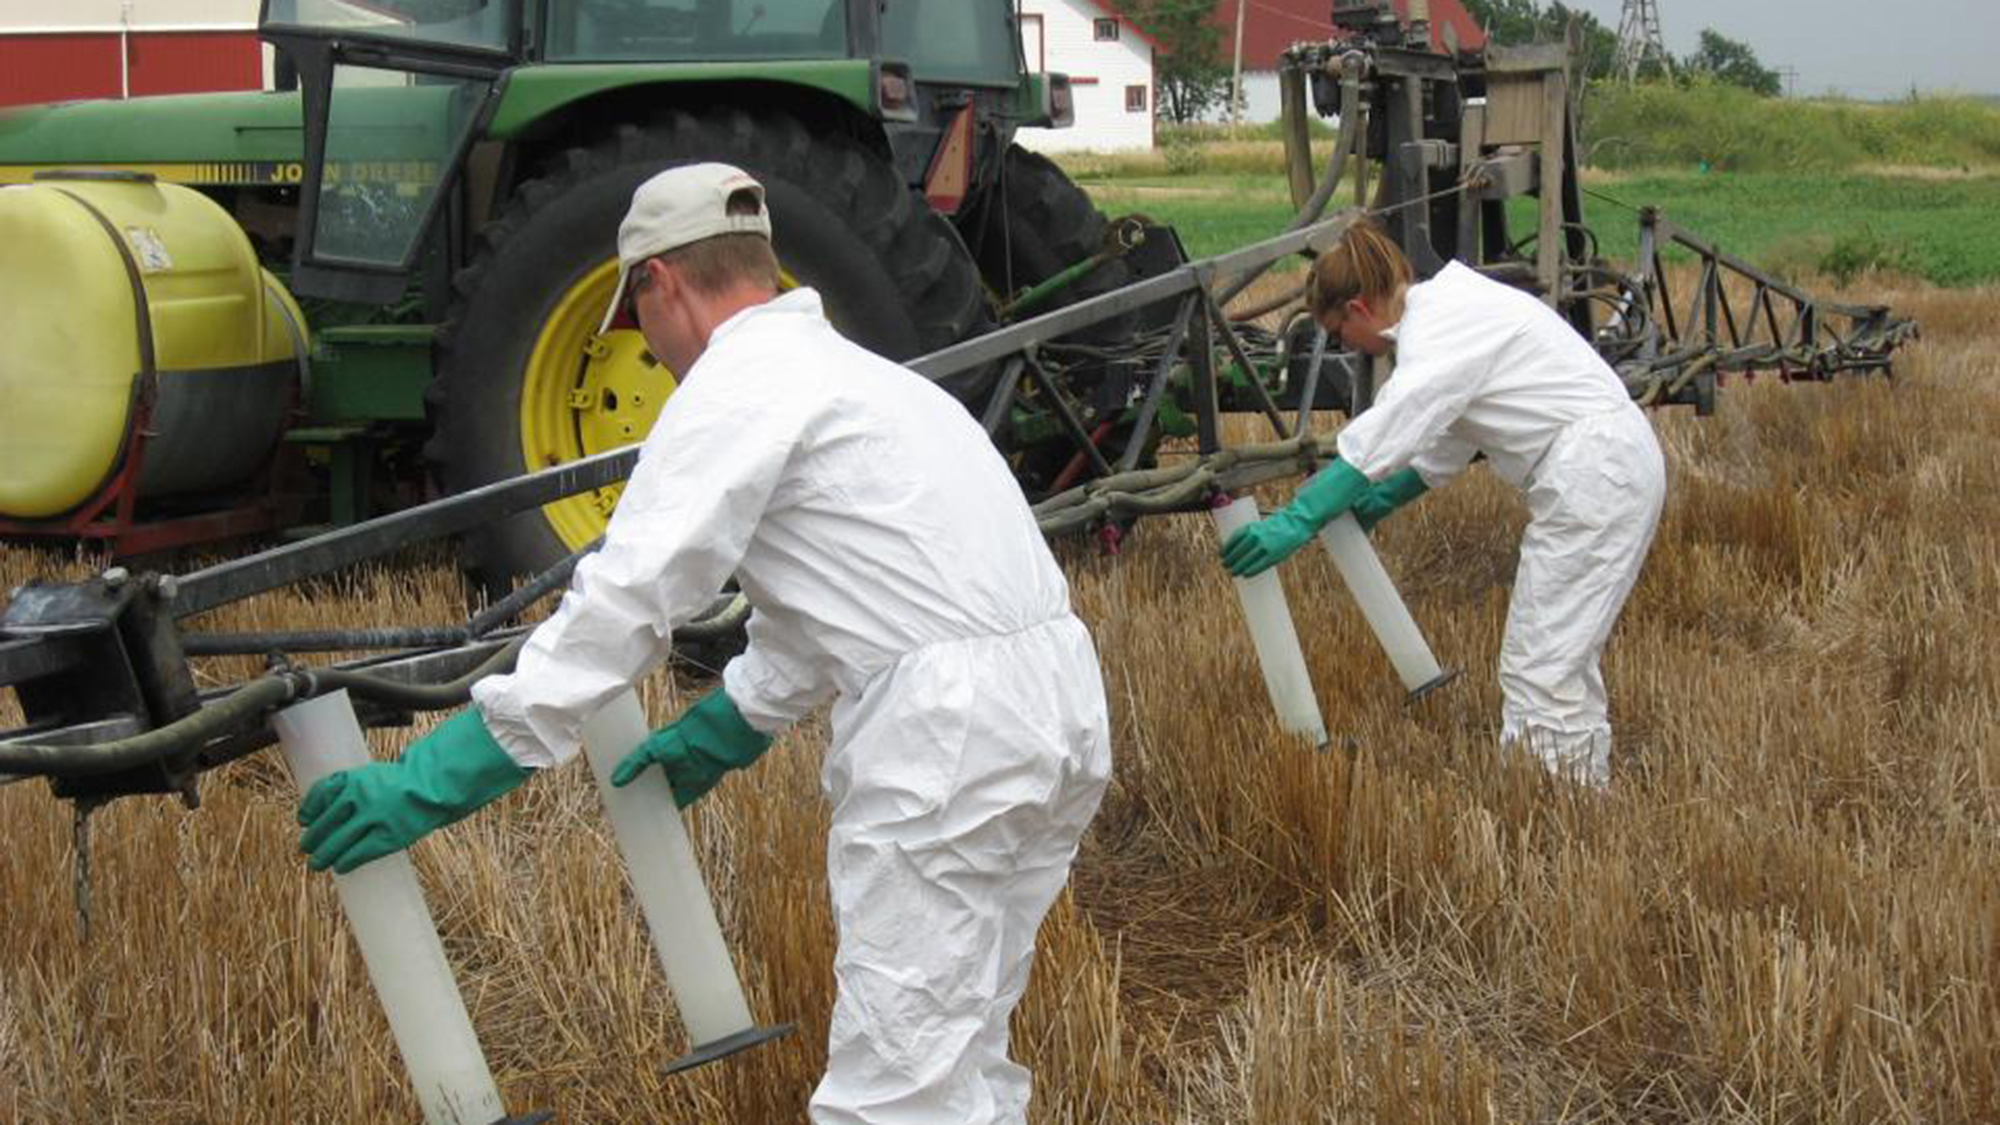 Nebraska Extension intends to host in-person pesticide safety education training for both private and commercial/noncommercial applicators in 2021 while adhering to local and state health guidelines.